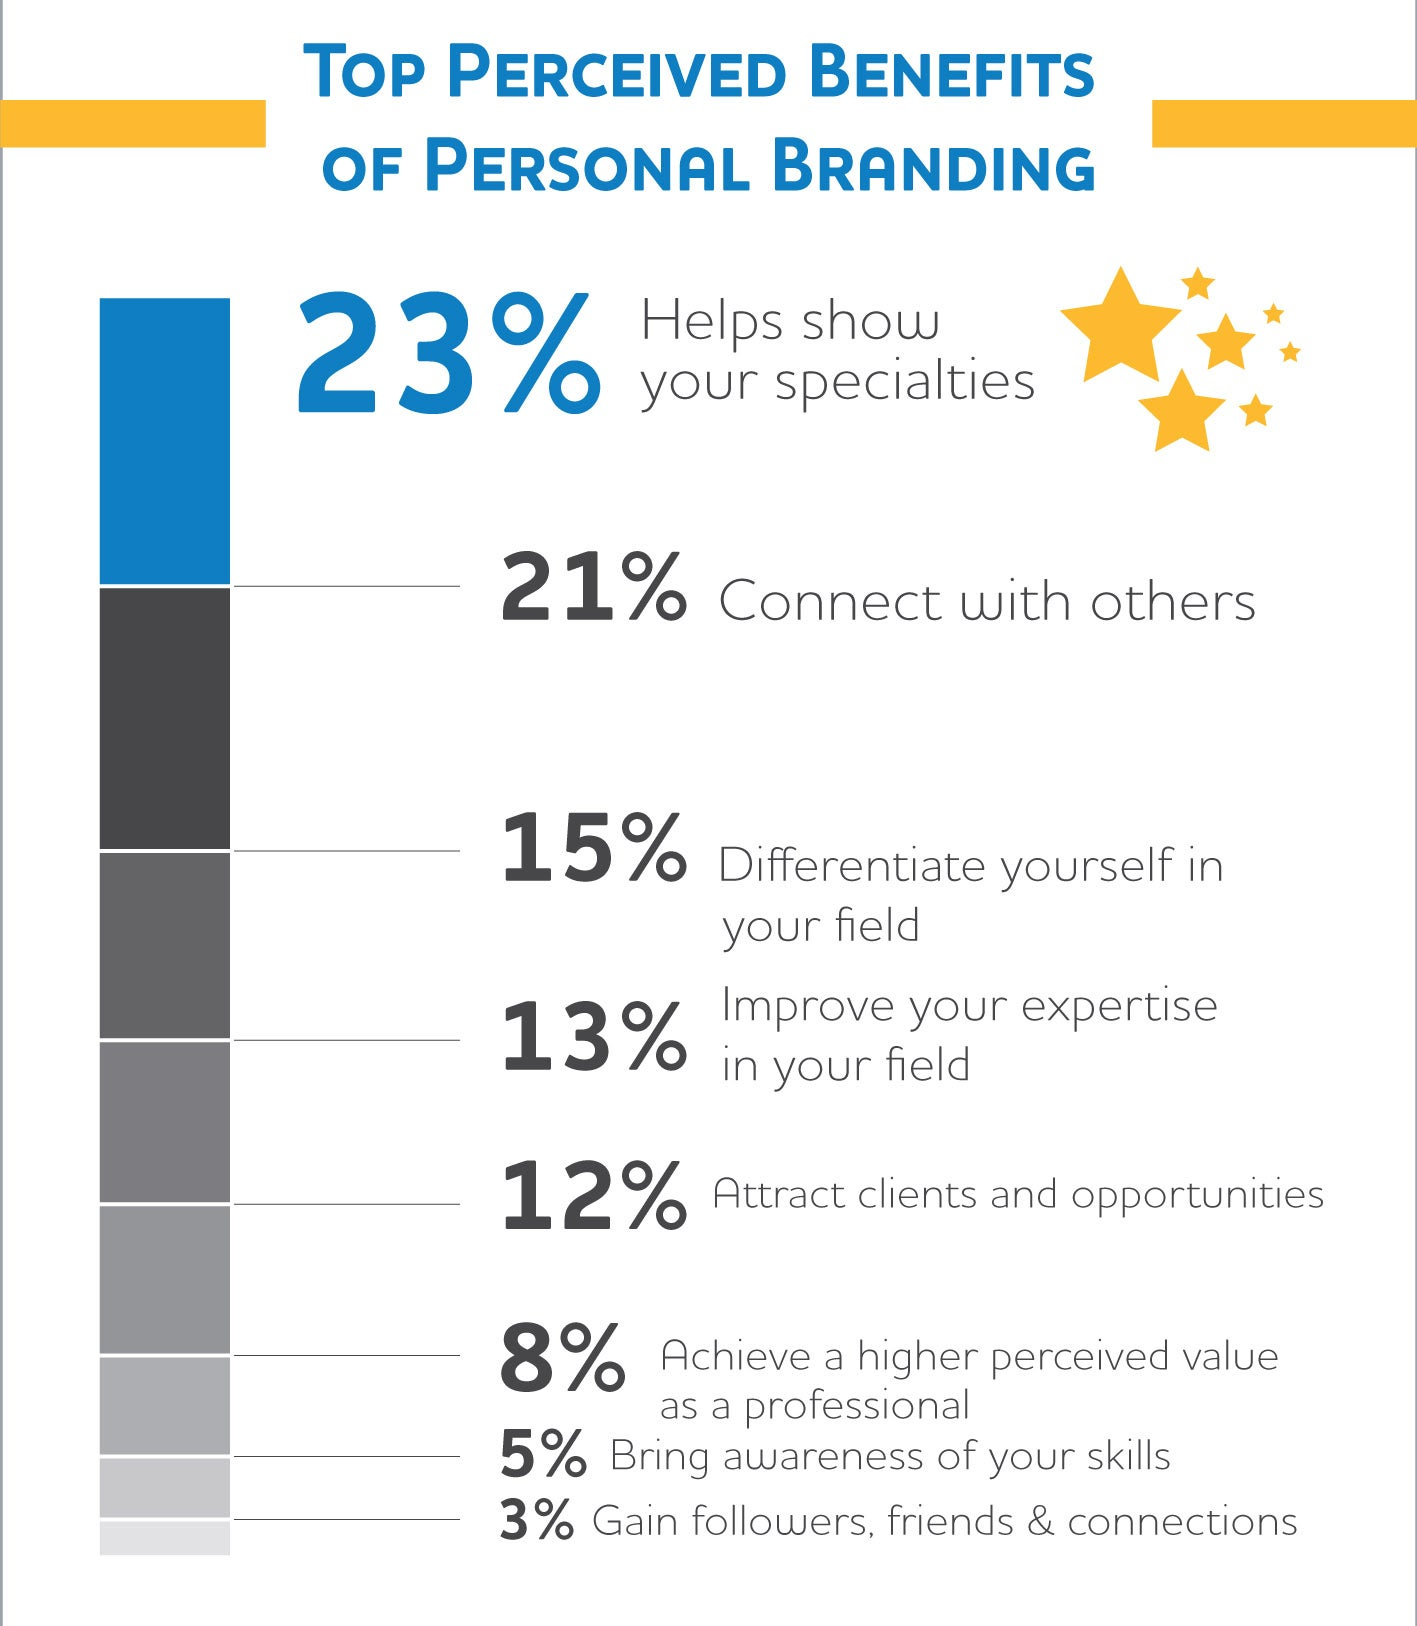 Branding Your Company Helps You Attract Better Quality